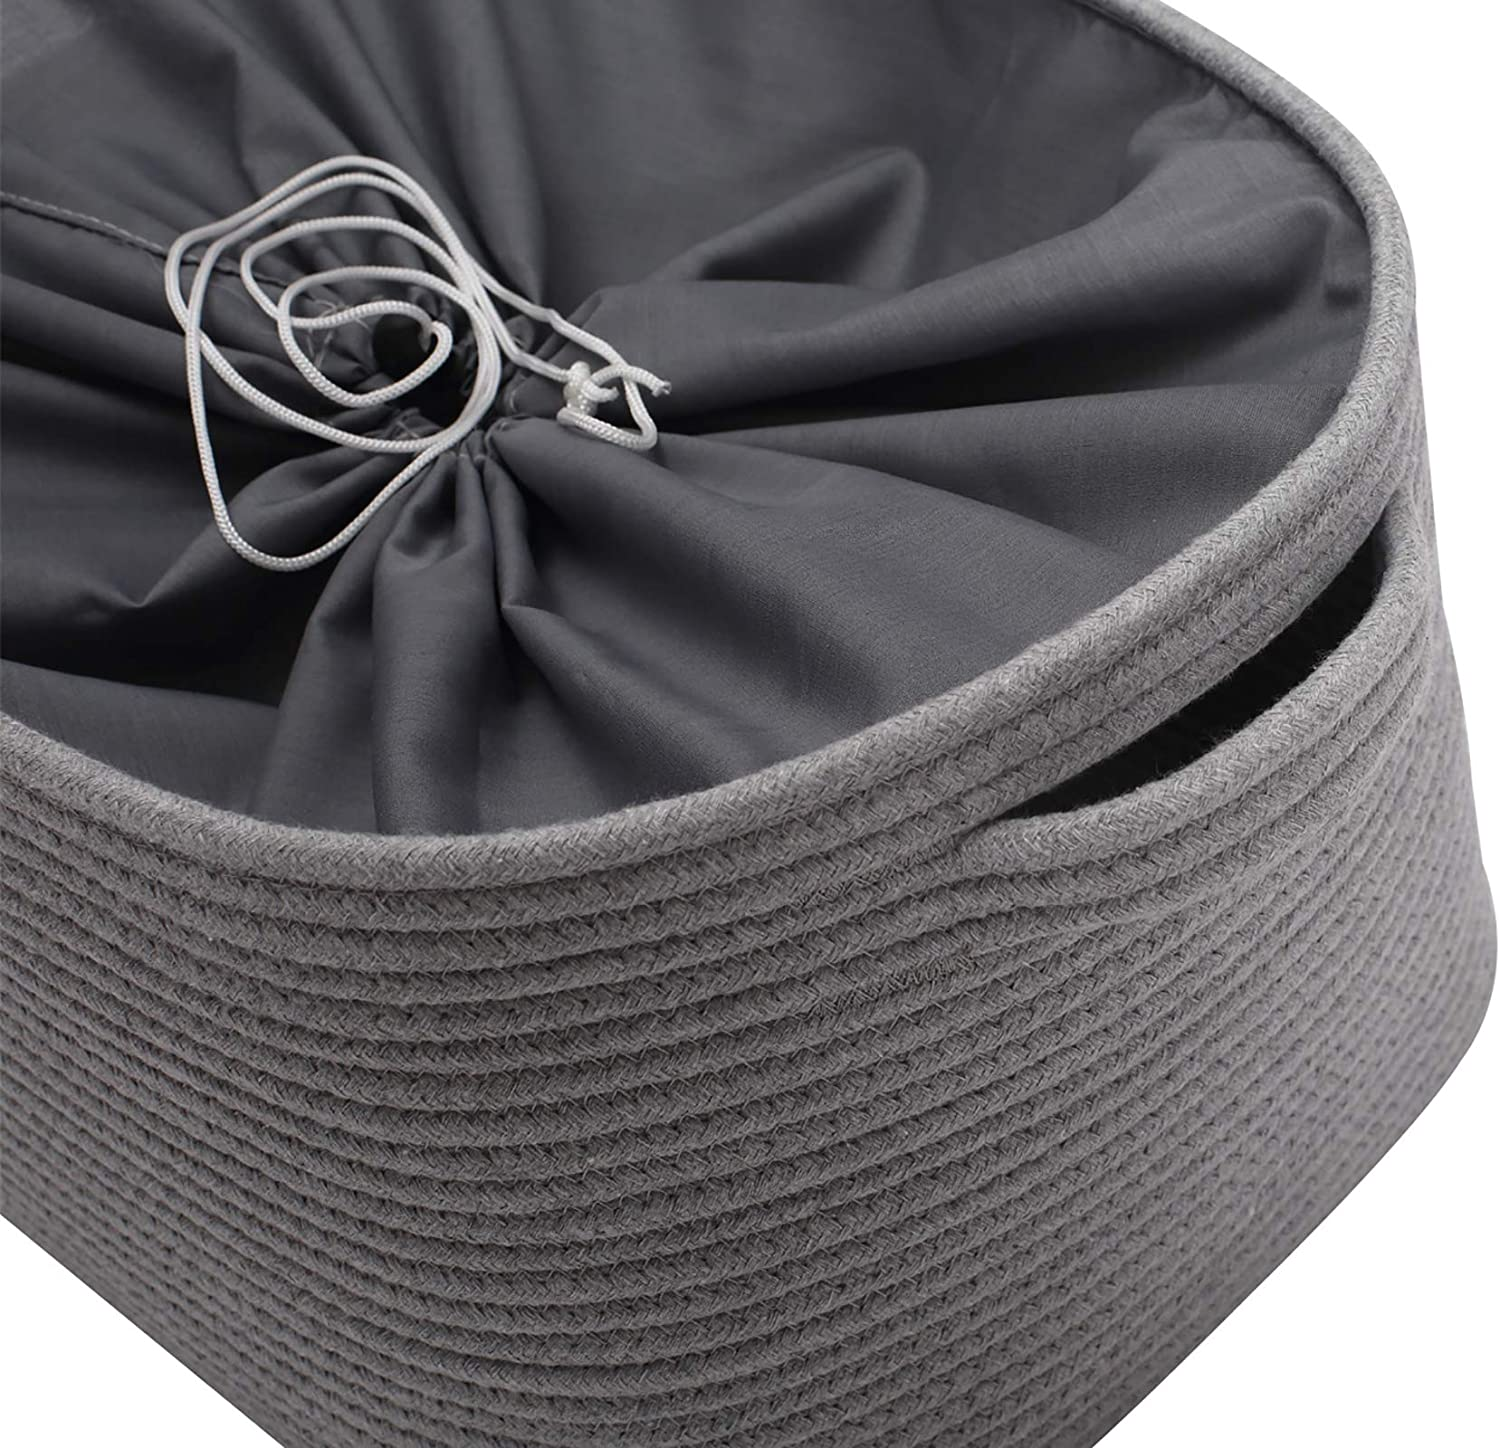 Coats Towel Perfect for Organizing Dog Toys Blankets Leashes Pet Pee Mat Morezi Cotton Rope Dog Toy Box Puppy Toy Basket Bin with Drawstring Closure Diaper